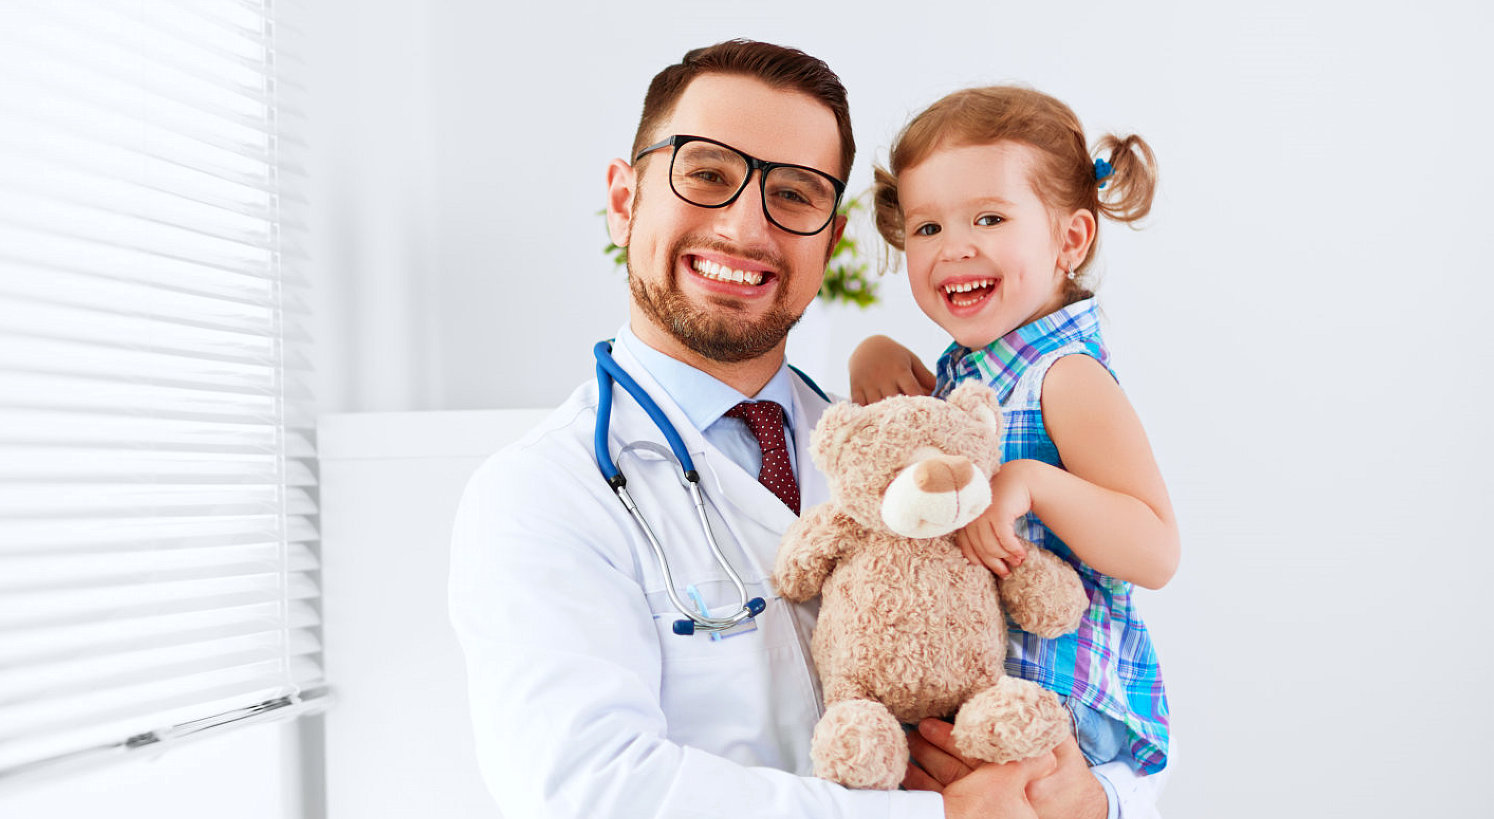 male doctor carrying a child